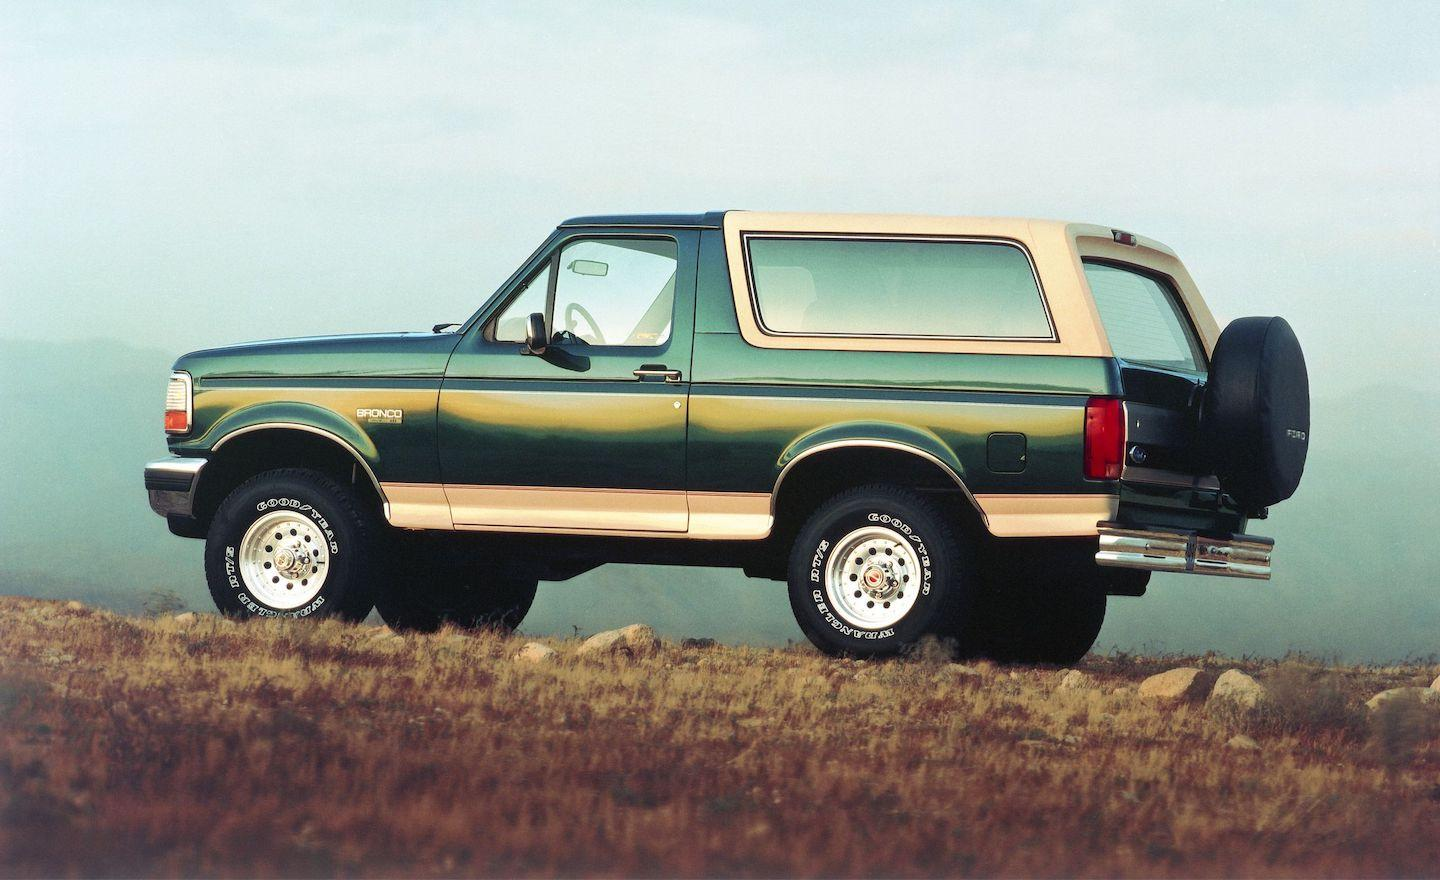 fifth-generation Ford Bronco, Ford Bronco, Bronco, fifth-generation Bronco